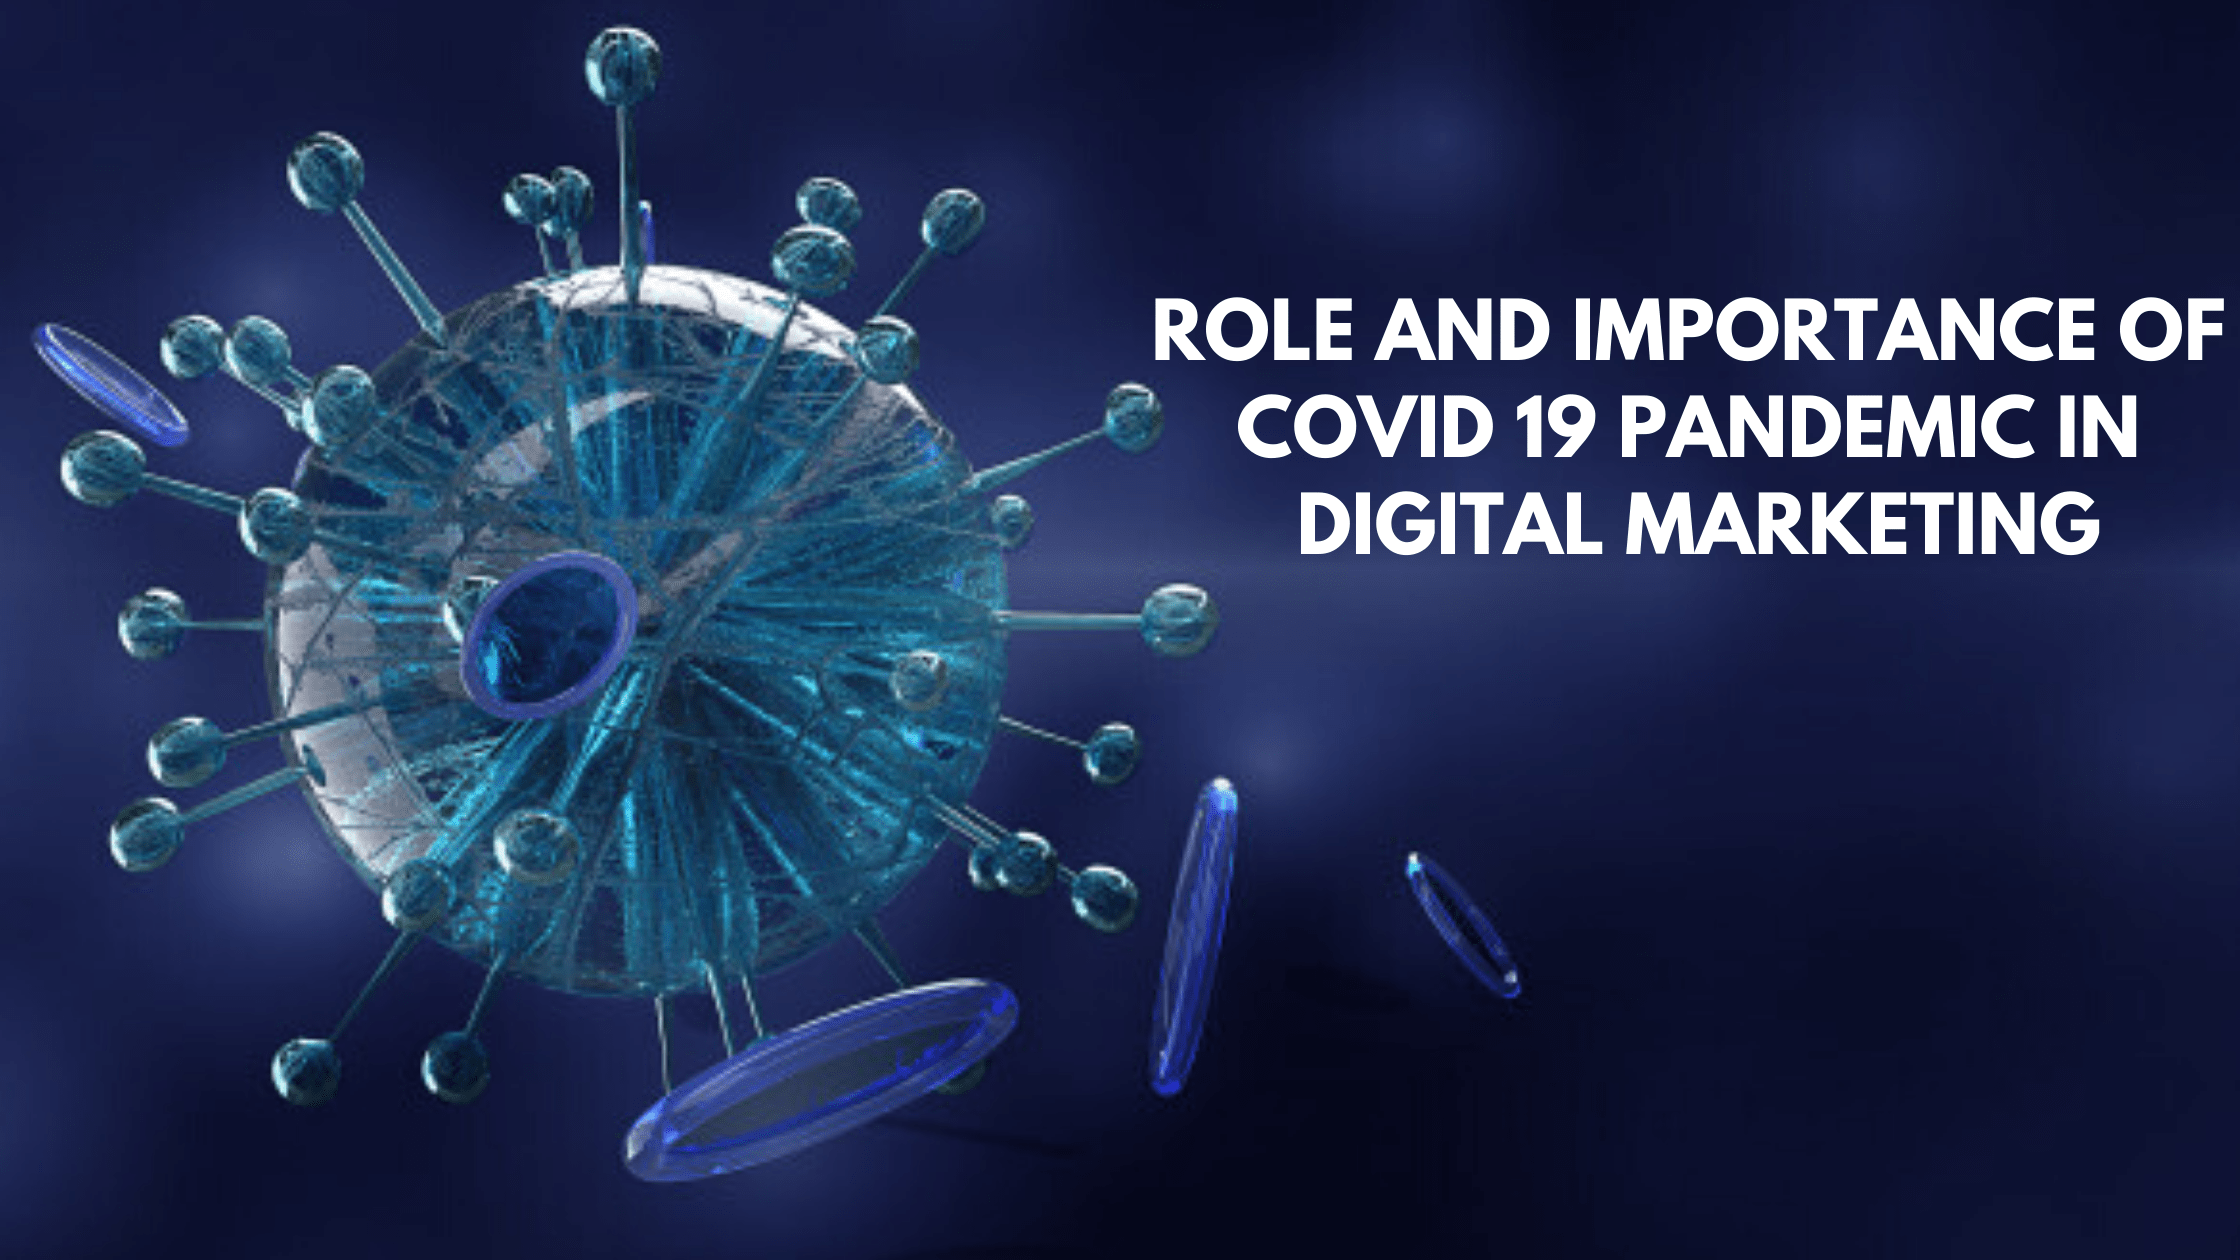 Role and Importance of COVID 19 Pandemic in Digital Marketing